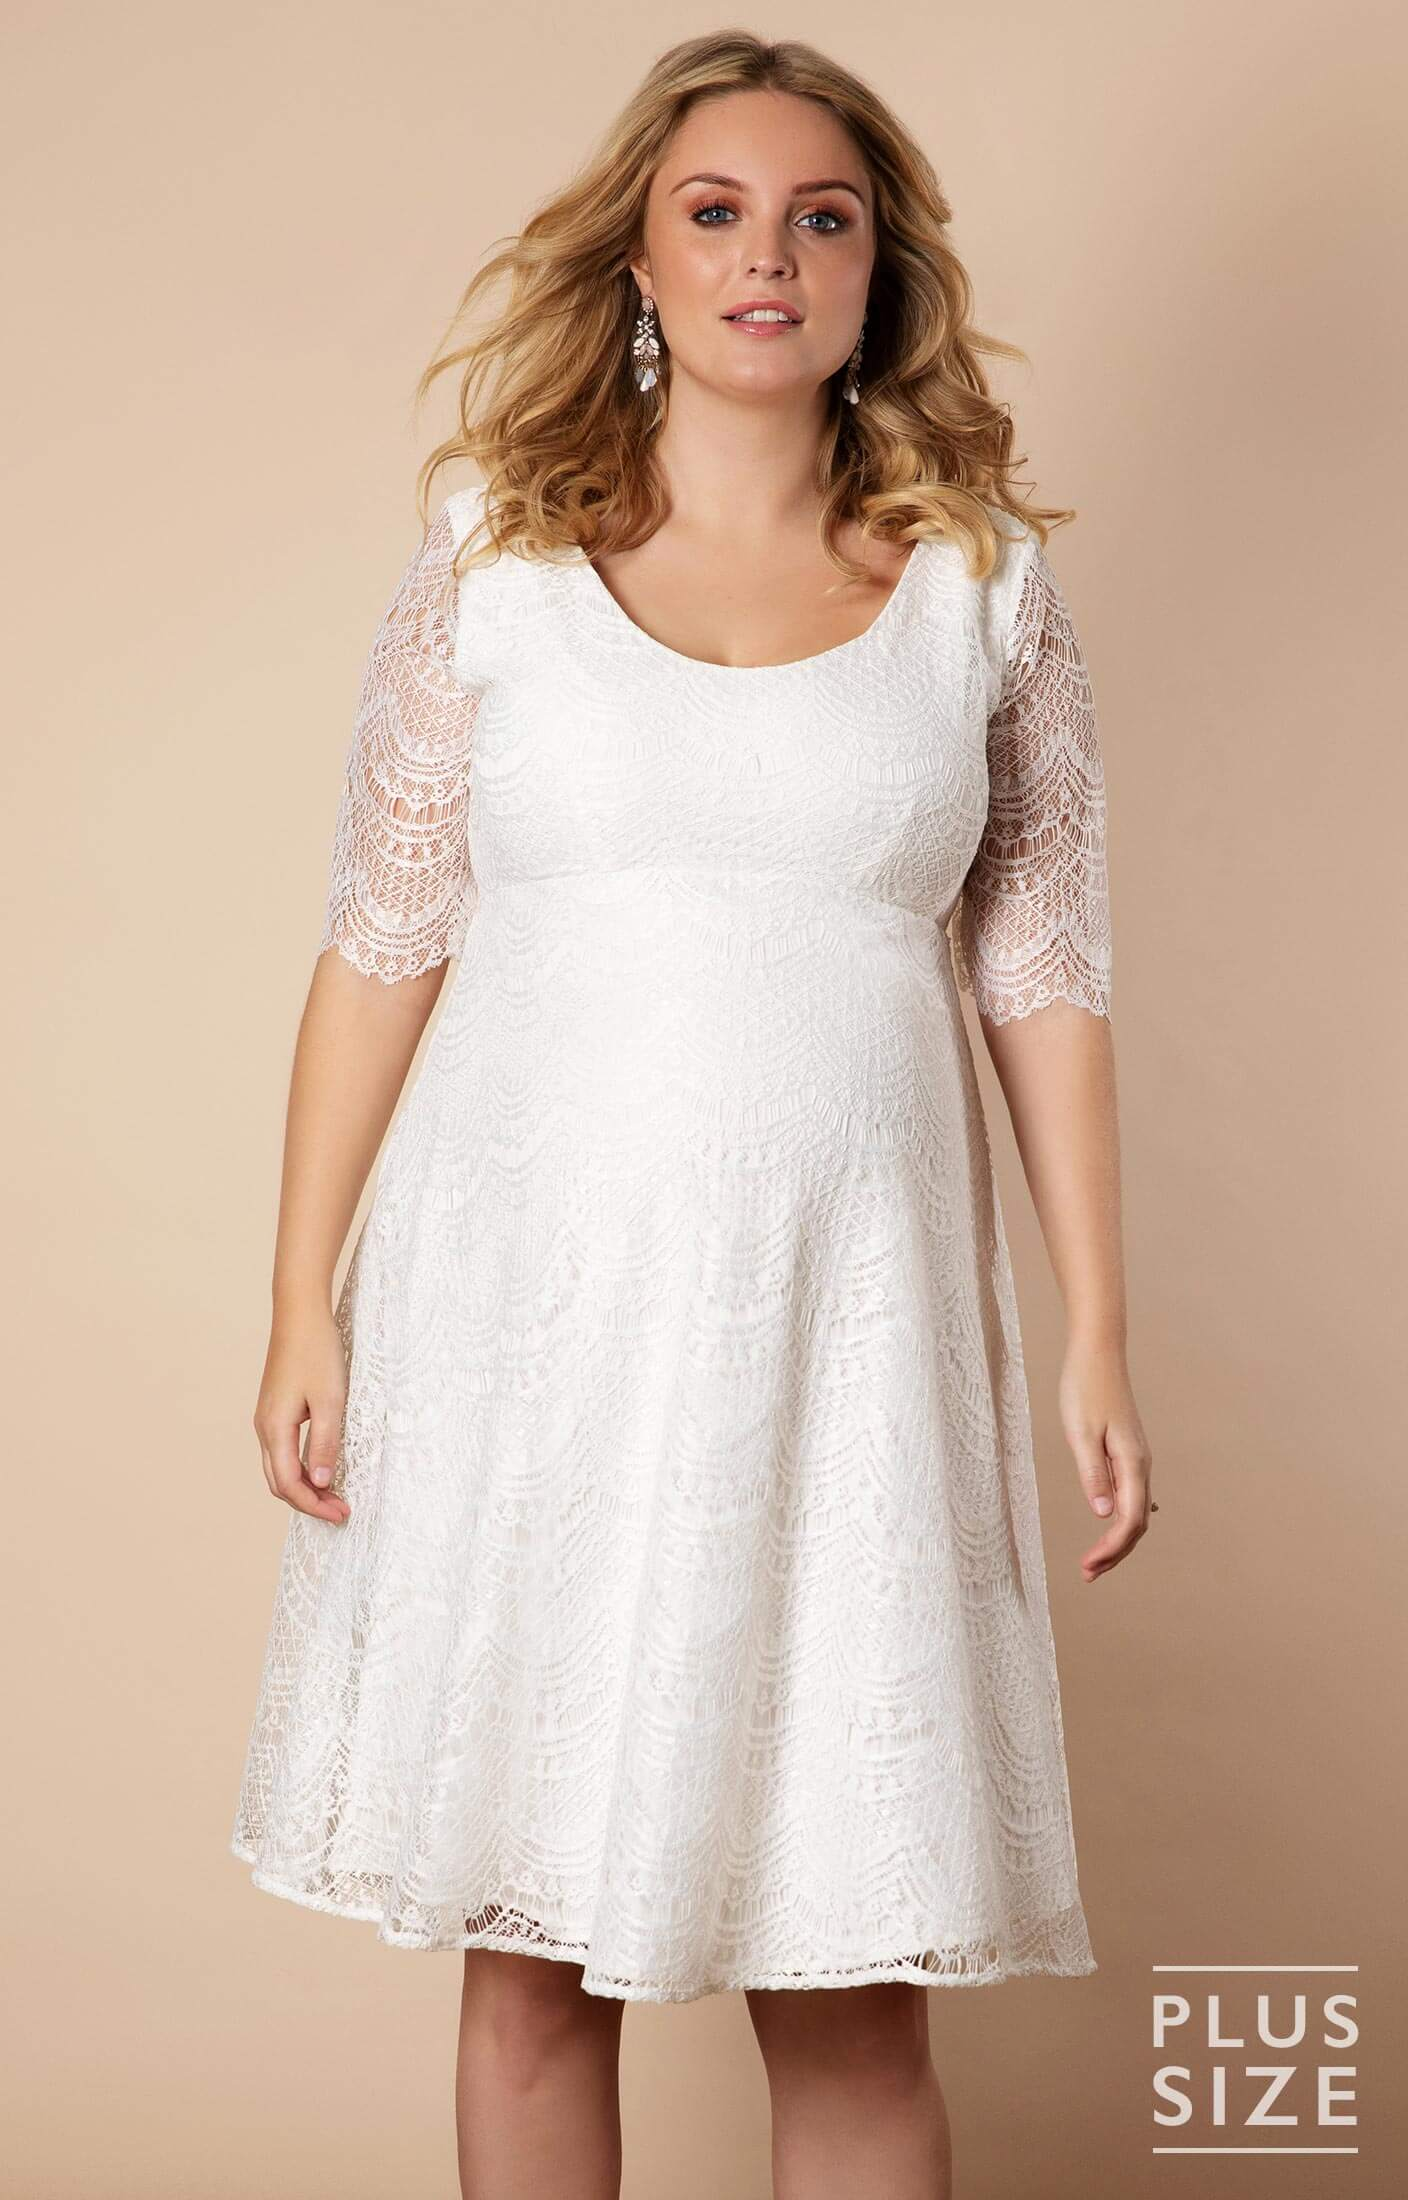 Verona Plus Size Maternity Wedding Dress Short Ivory White Maternity Wedding Dresses Evening Wear And Party Clothes By Tiffany Rose